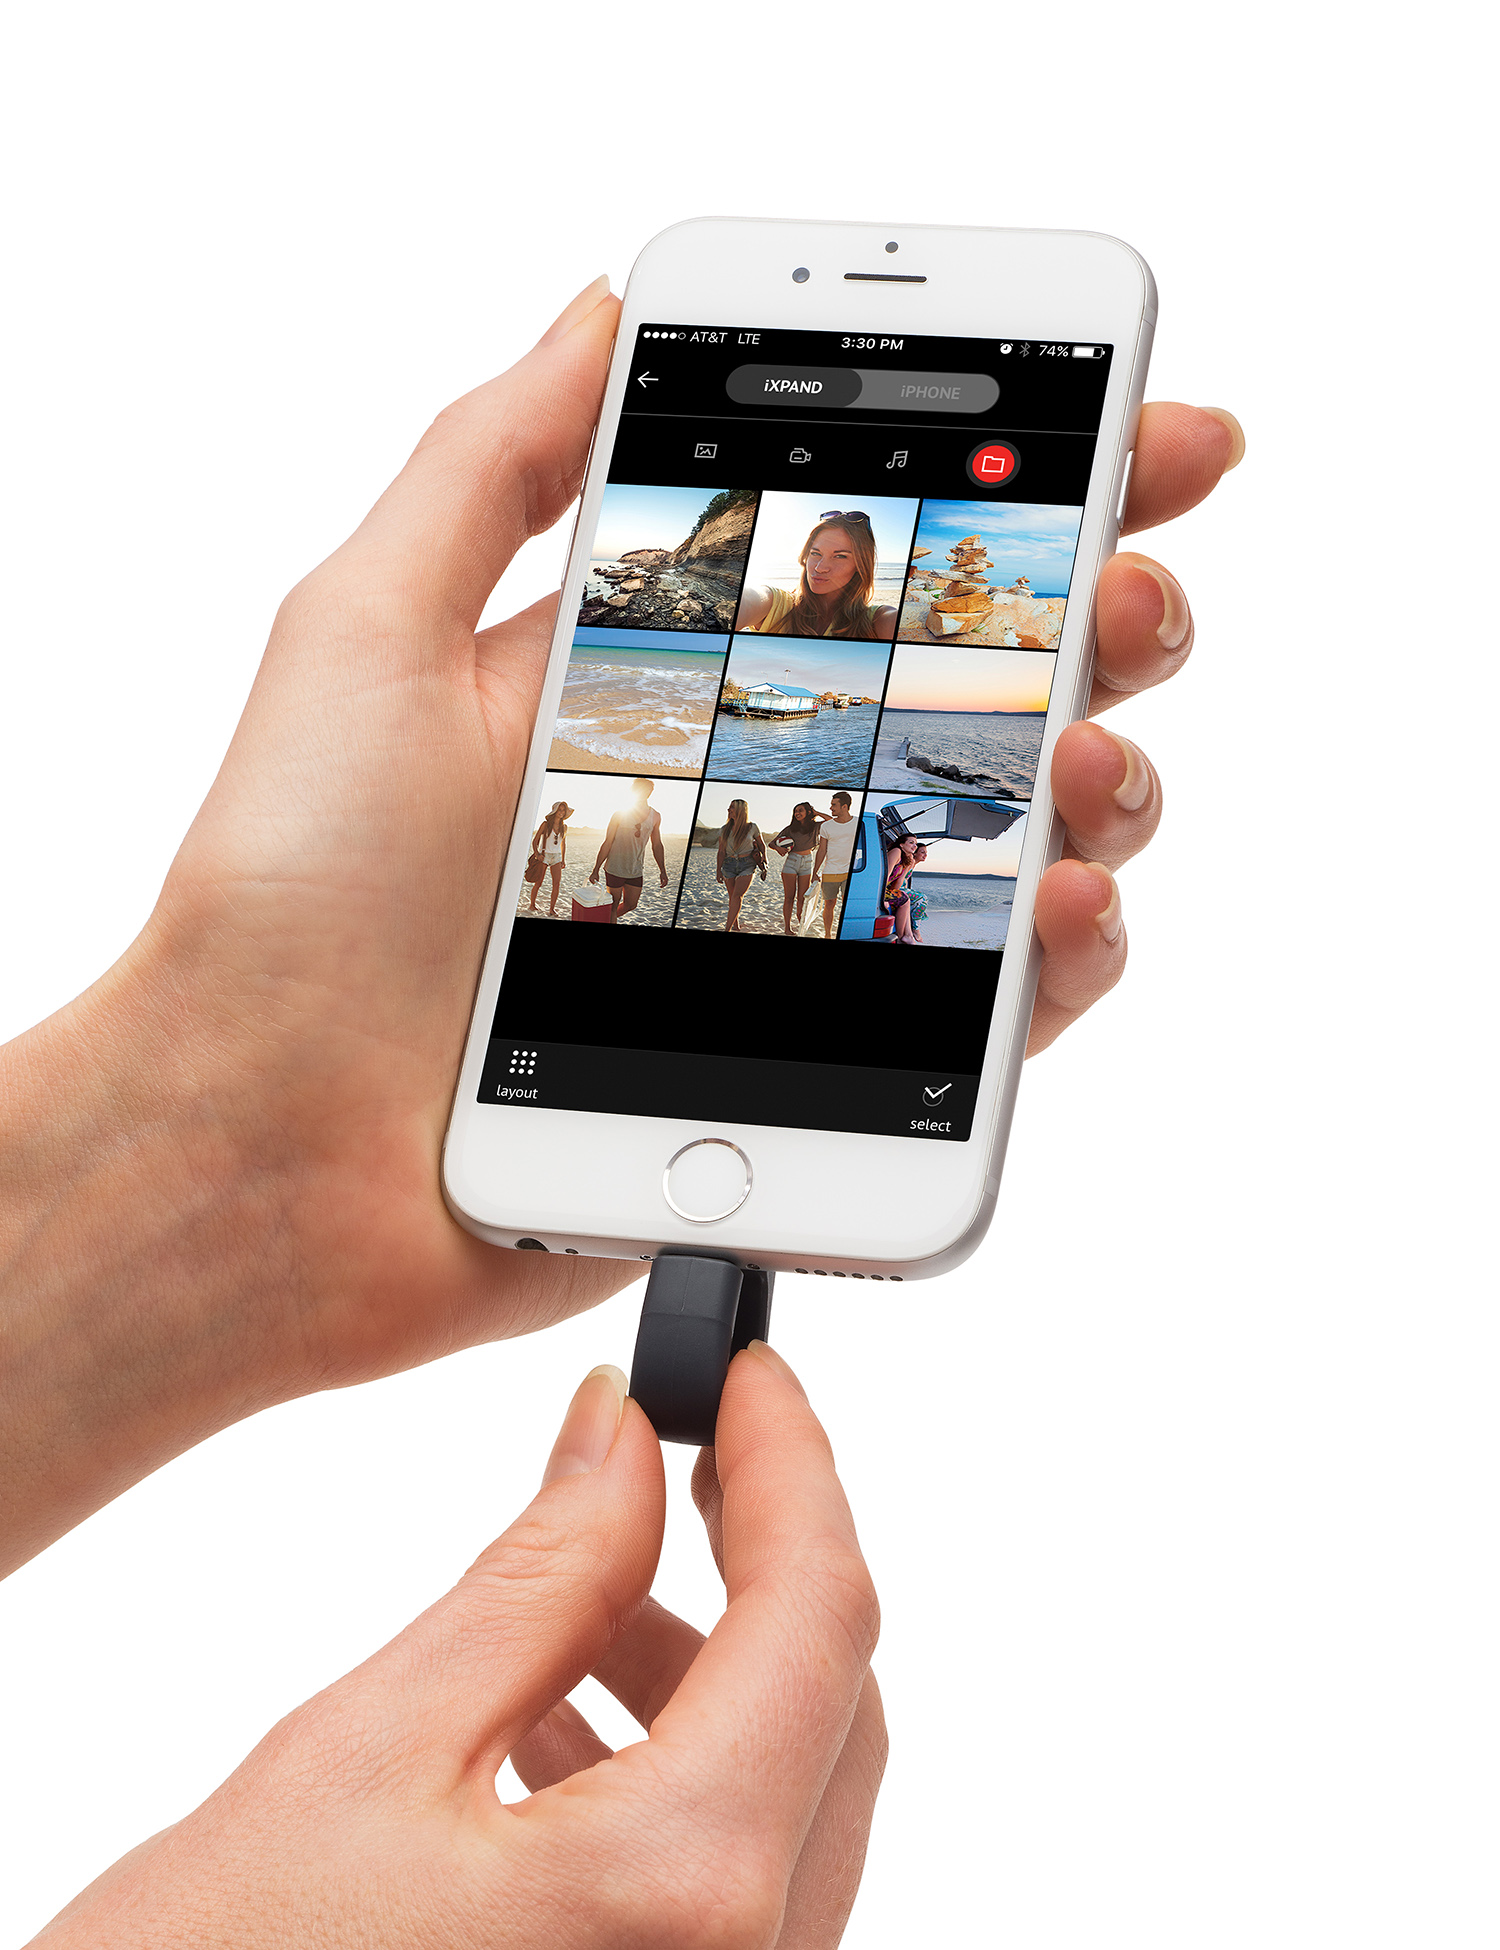 Product: iXpand Flash Drive – device in iPhone